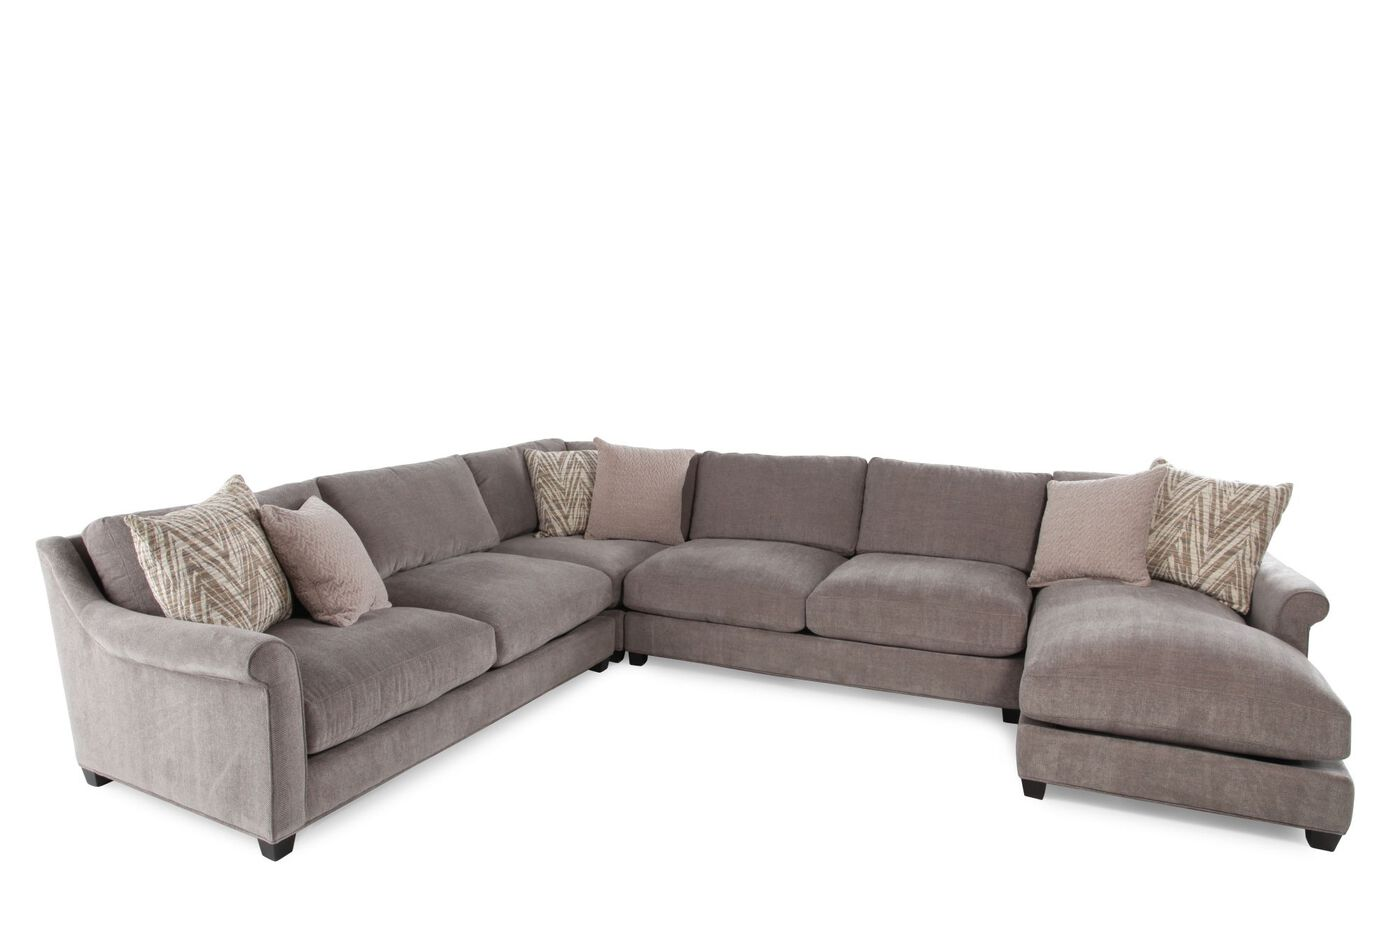 Jonathan Louis Shearson Four-Piece Sectional : Mathis Brothers Furniture